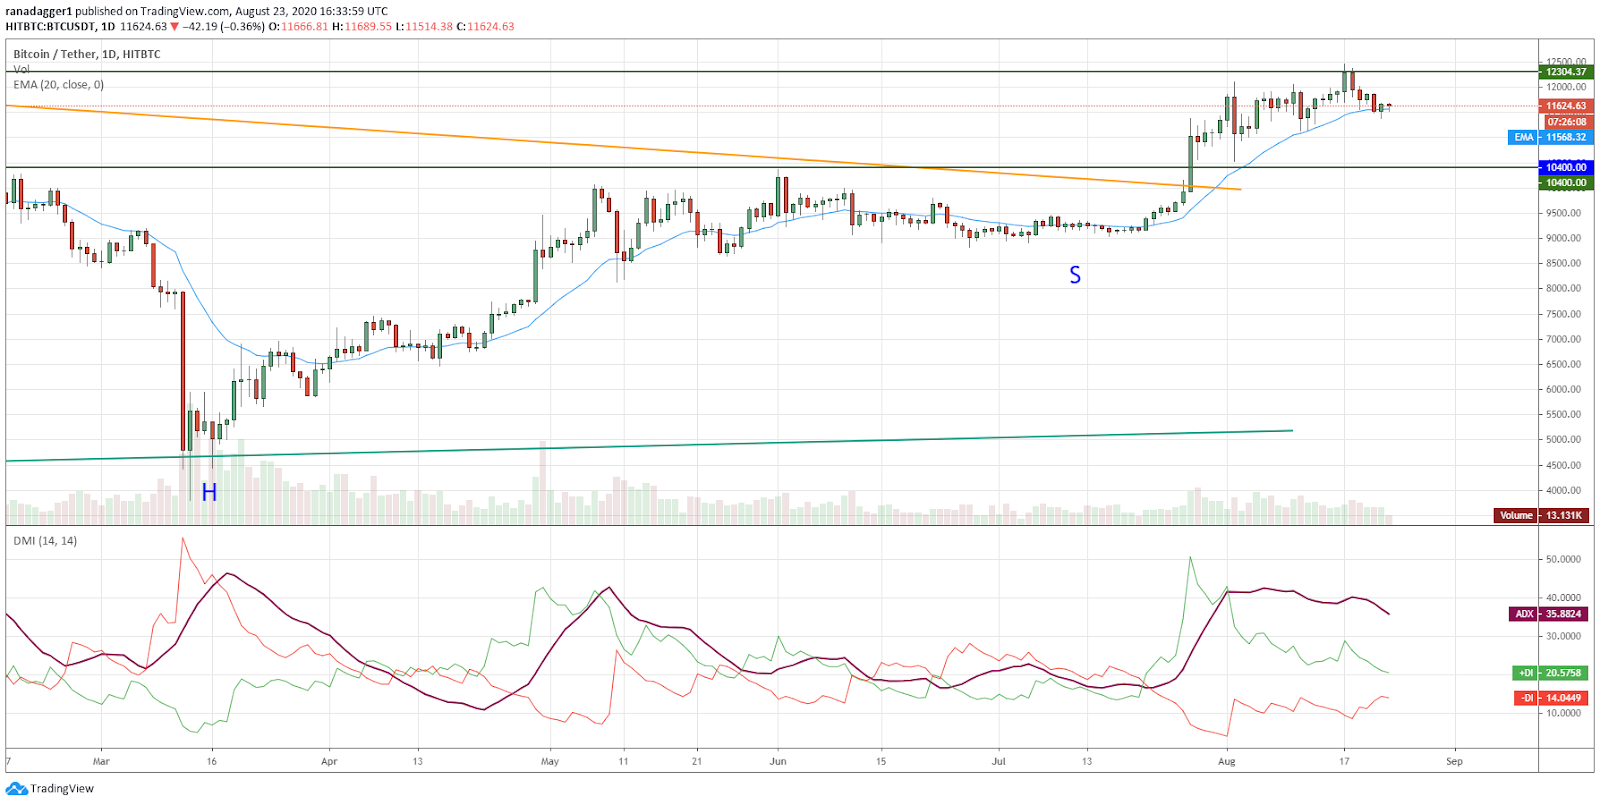 BTC/USD daily chart